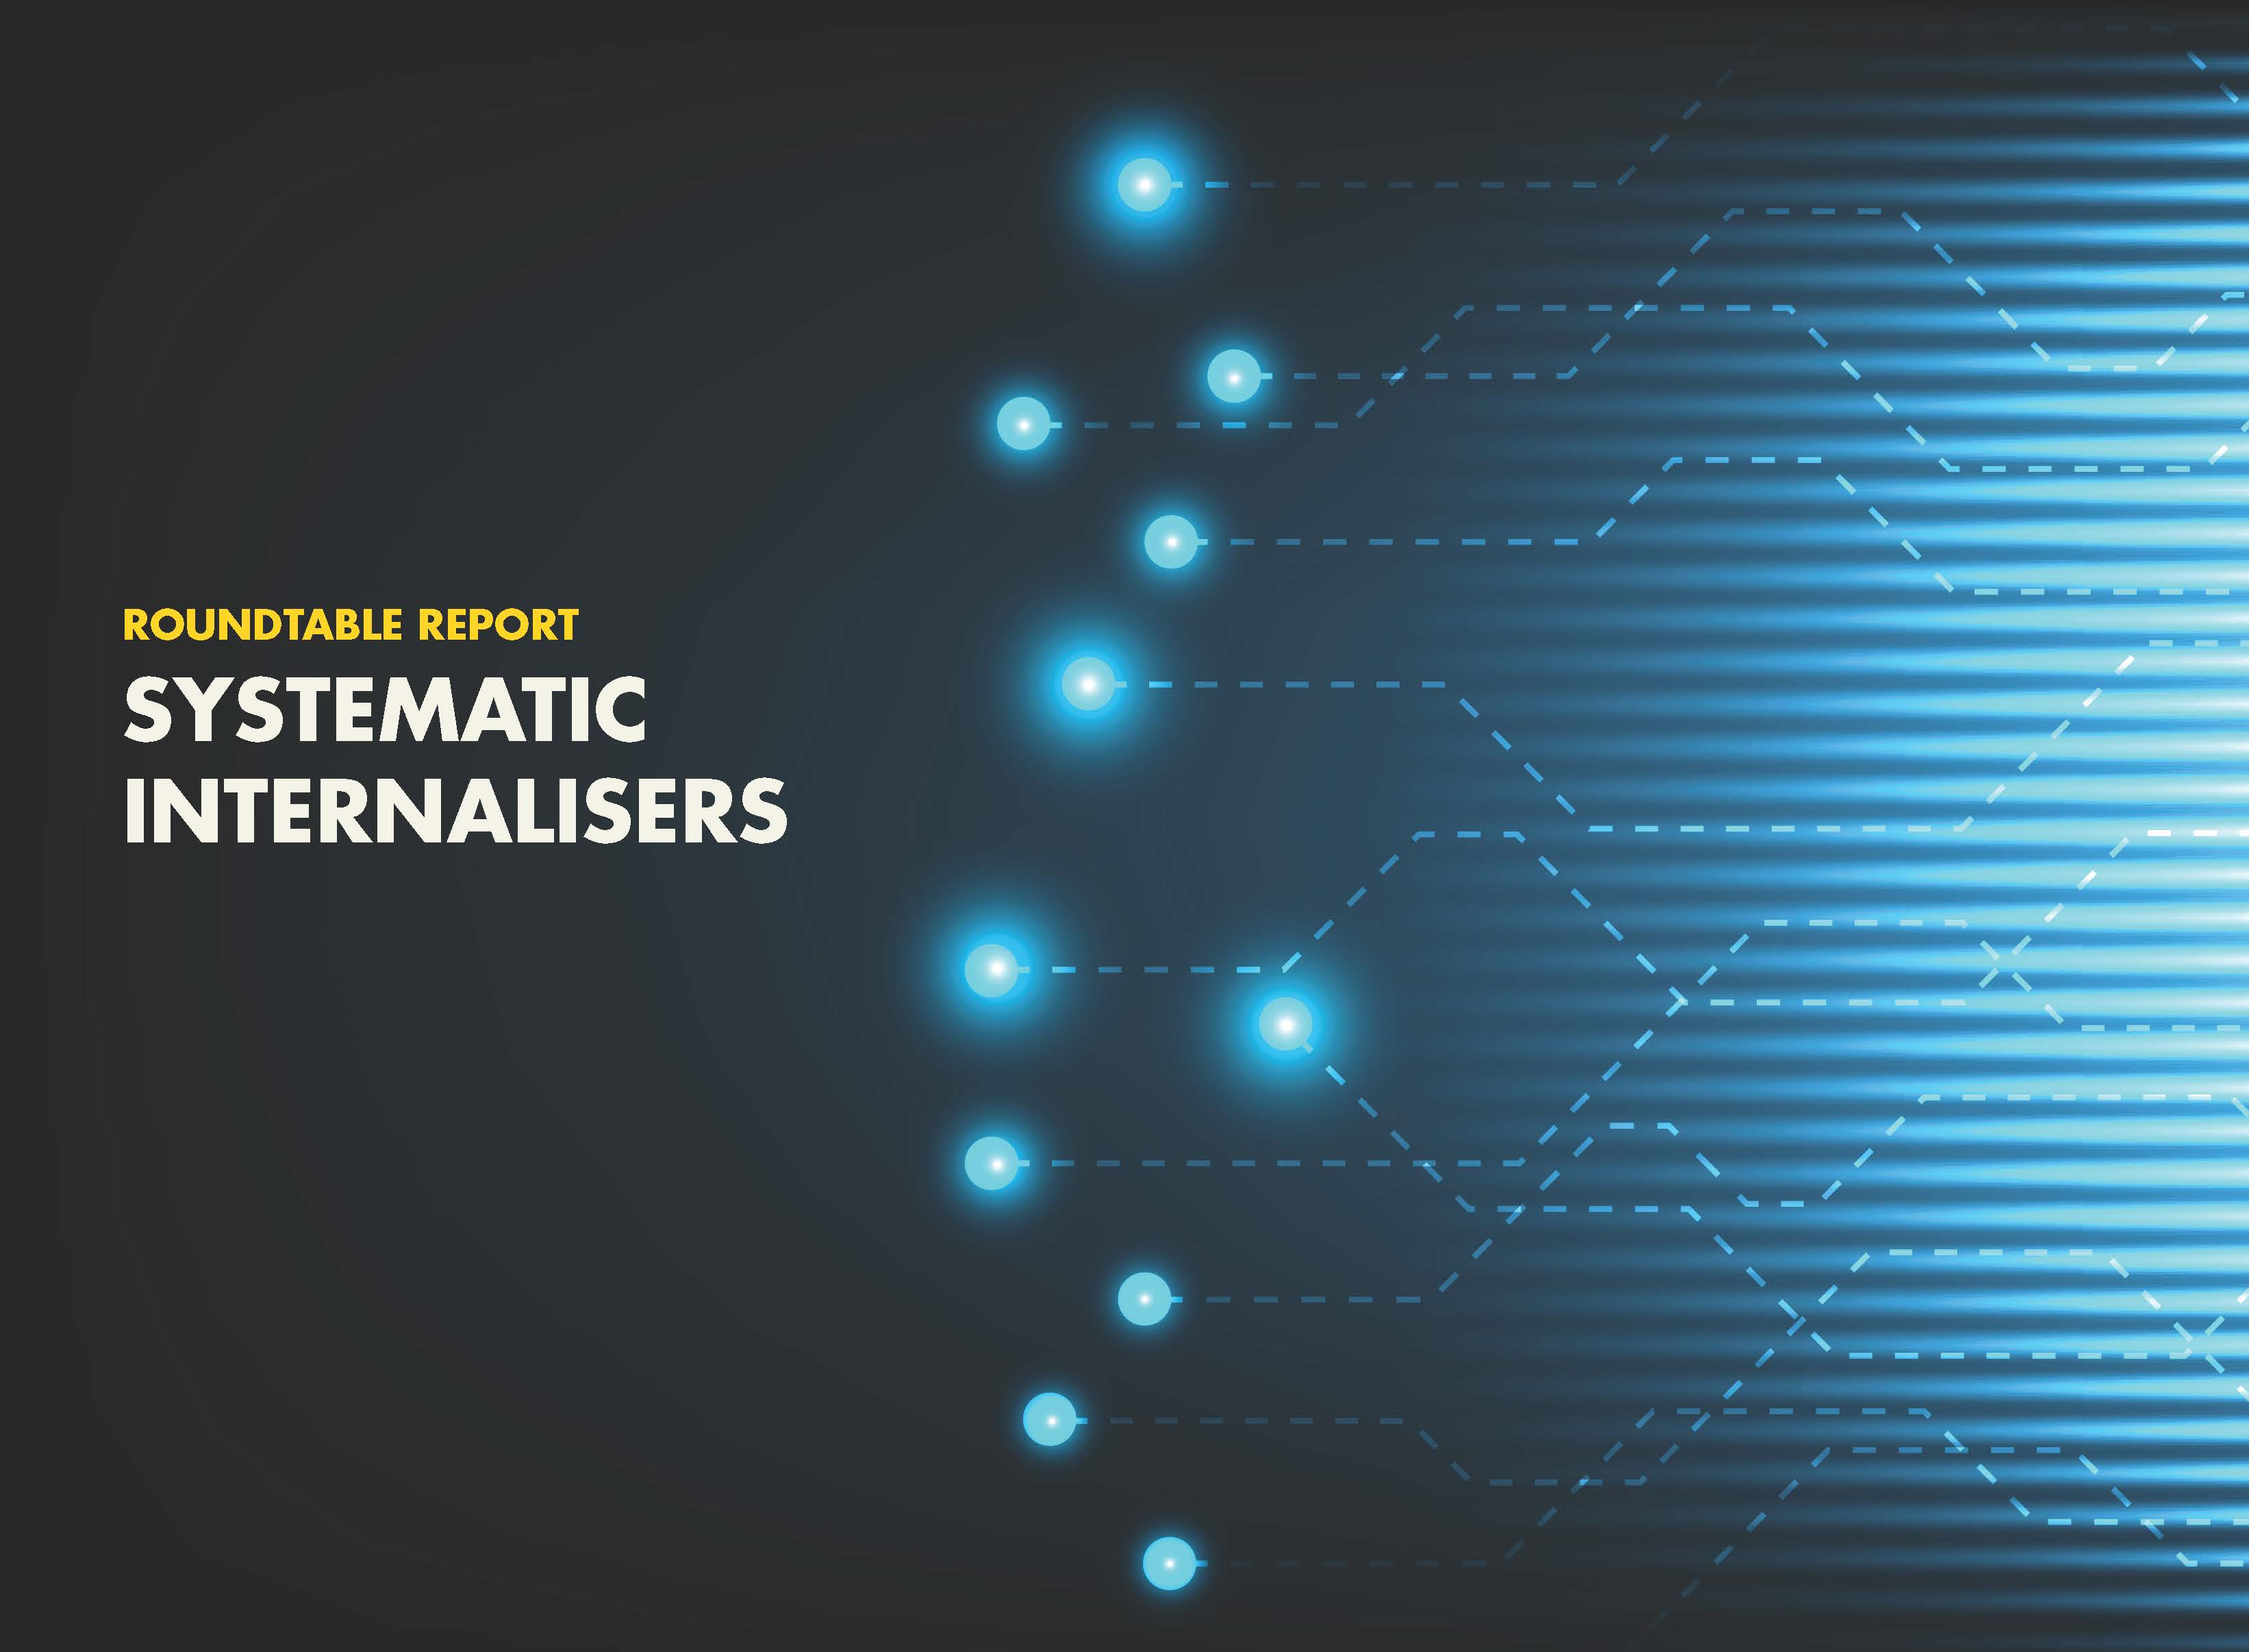 Roundtable Report: Systematic Internalisers: Challenges and Opportunities in the MiFID II era